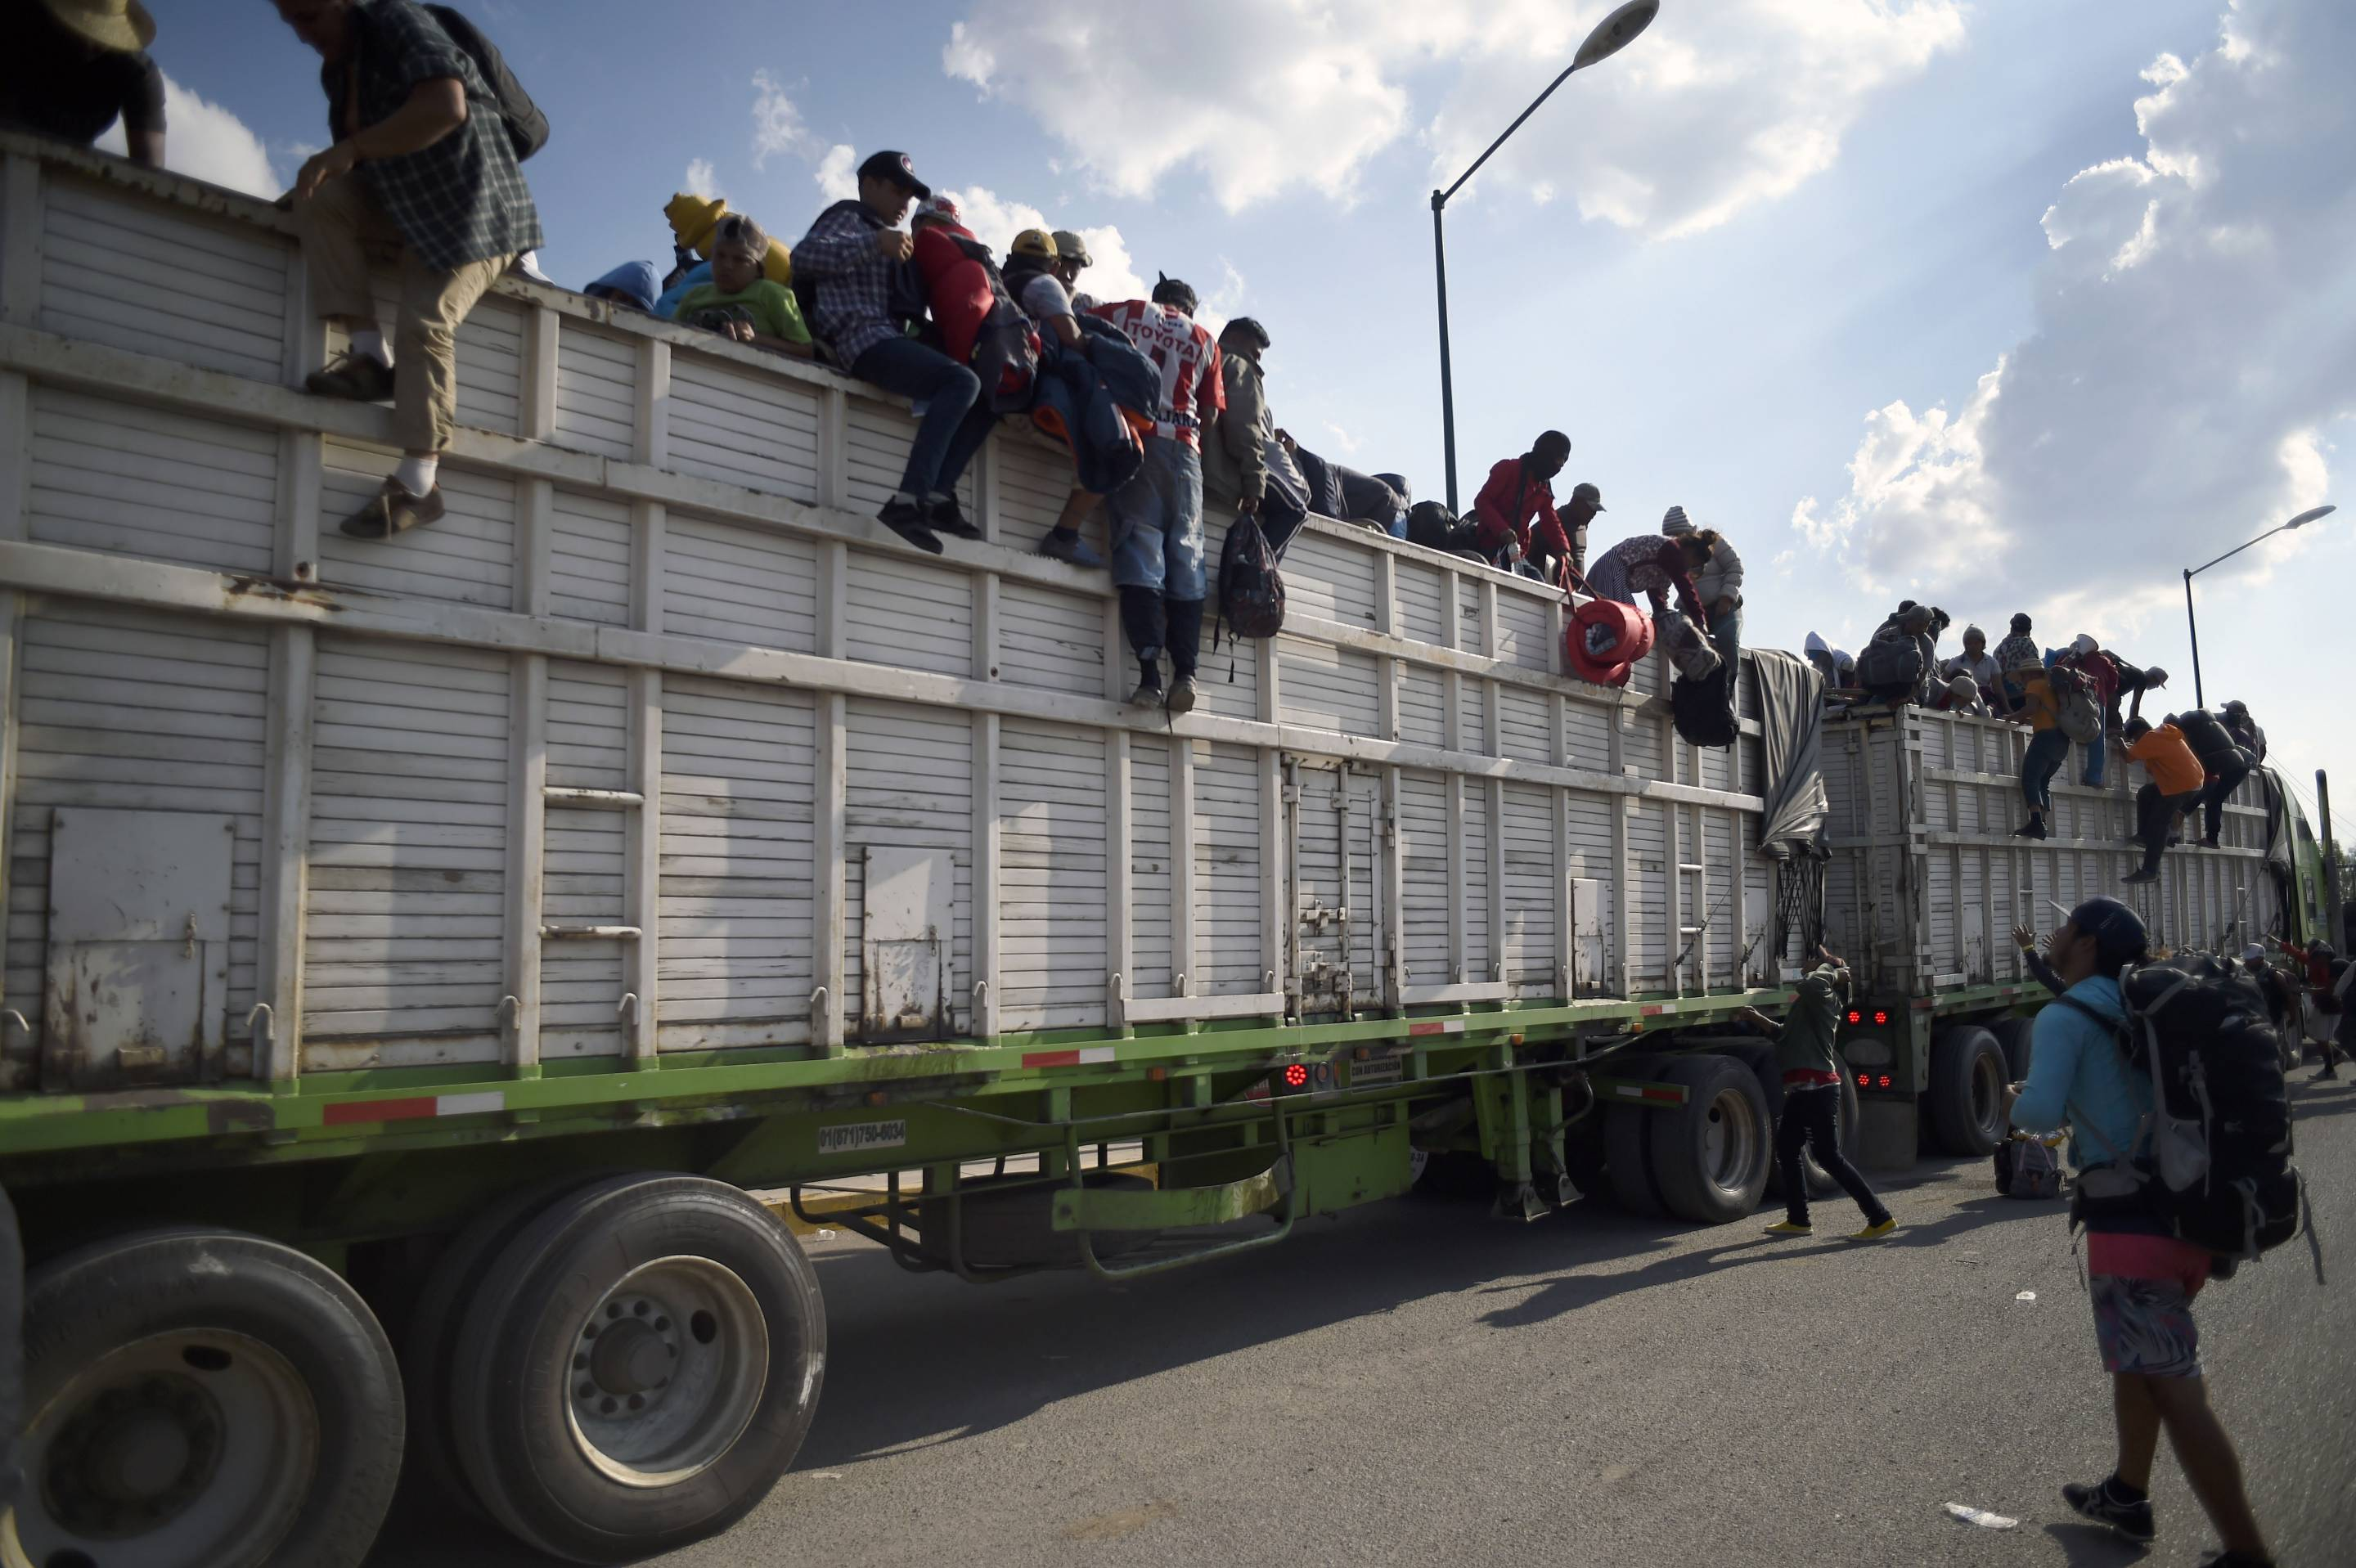 Central American migrants descend from a truck at a temporary shelter in Irapuato, Mexico, on Nov. 11, 2018.